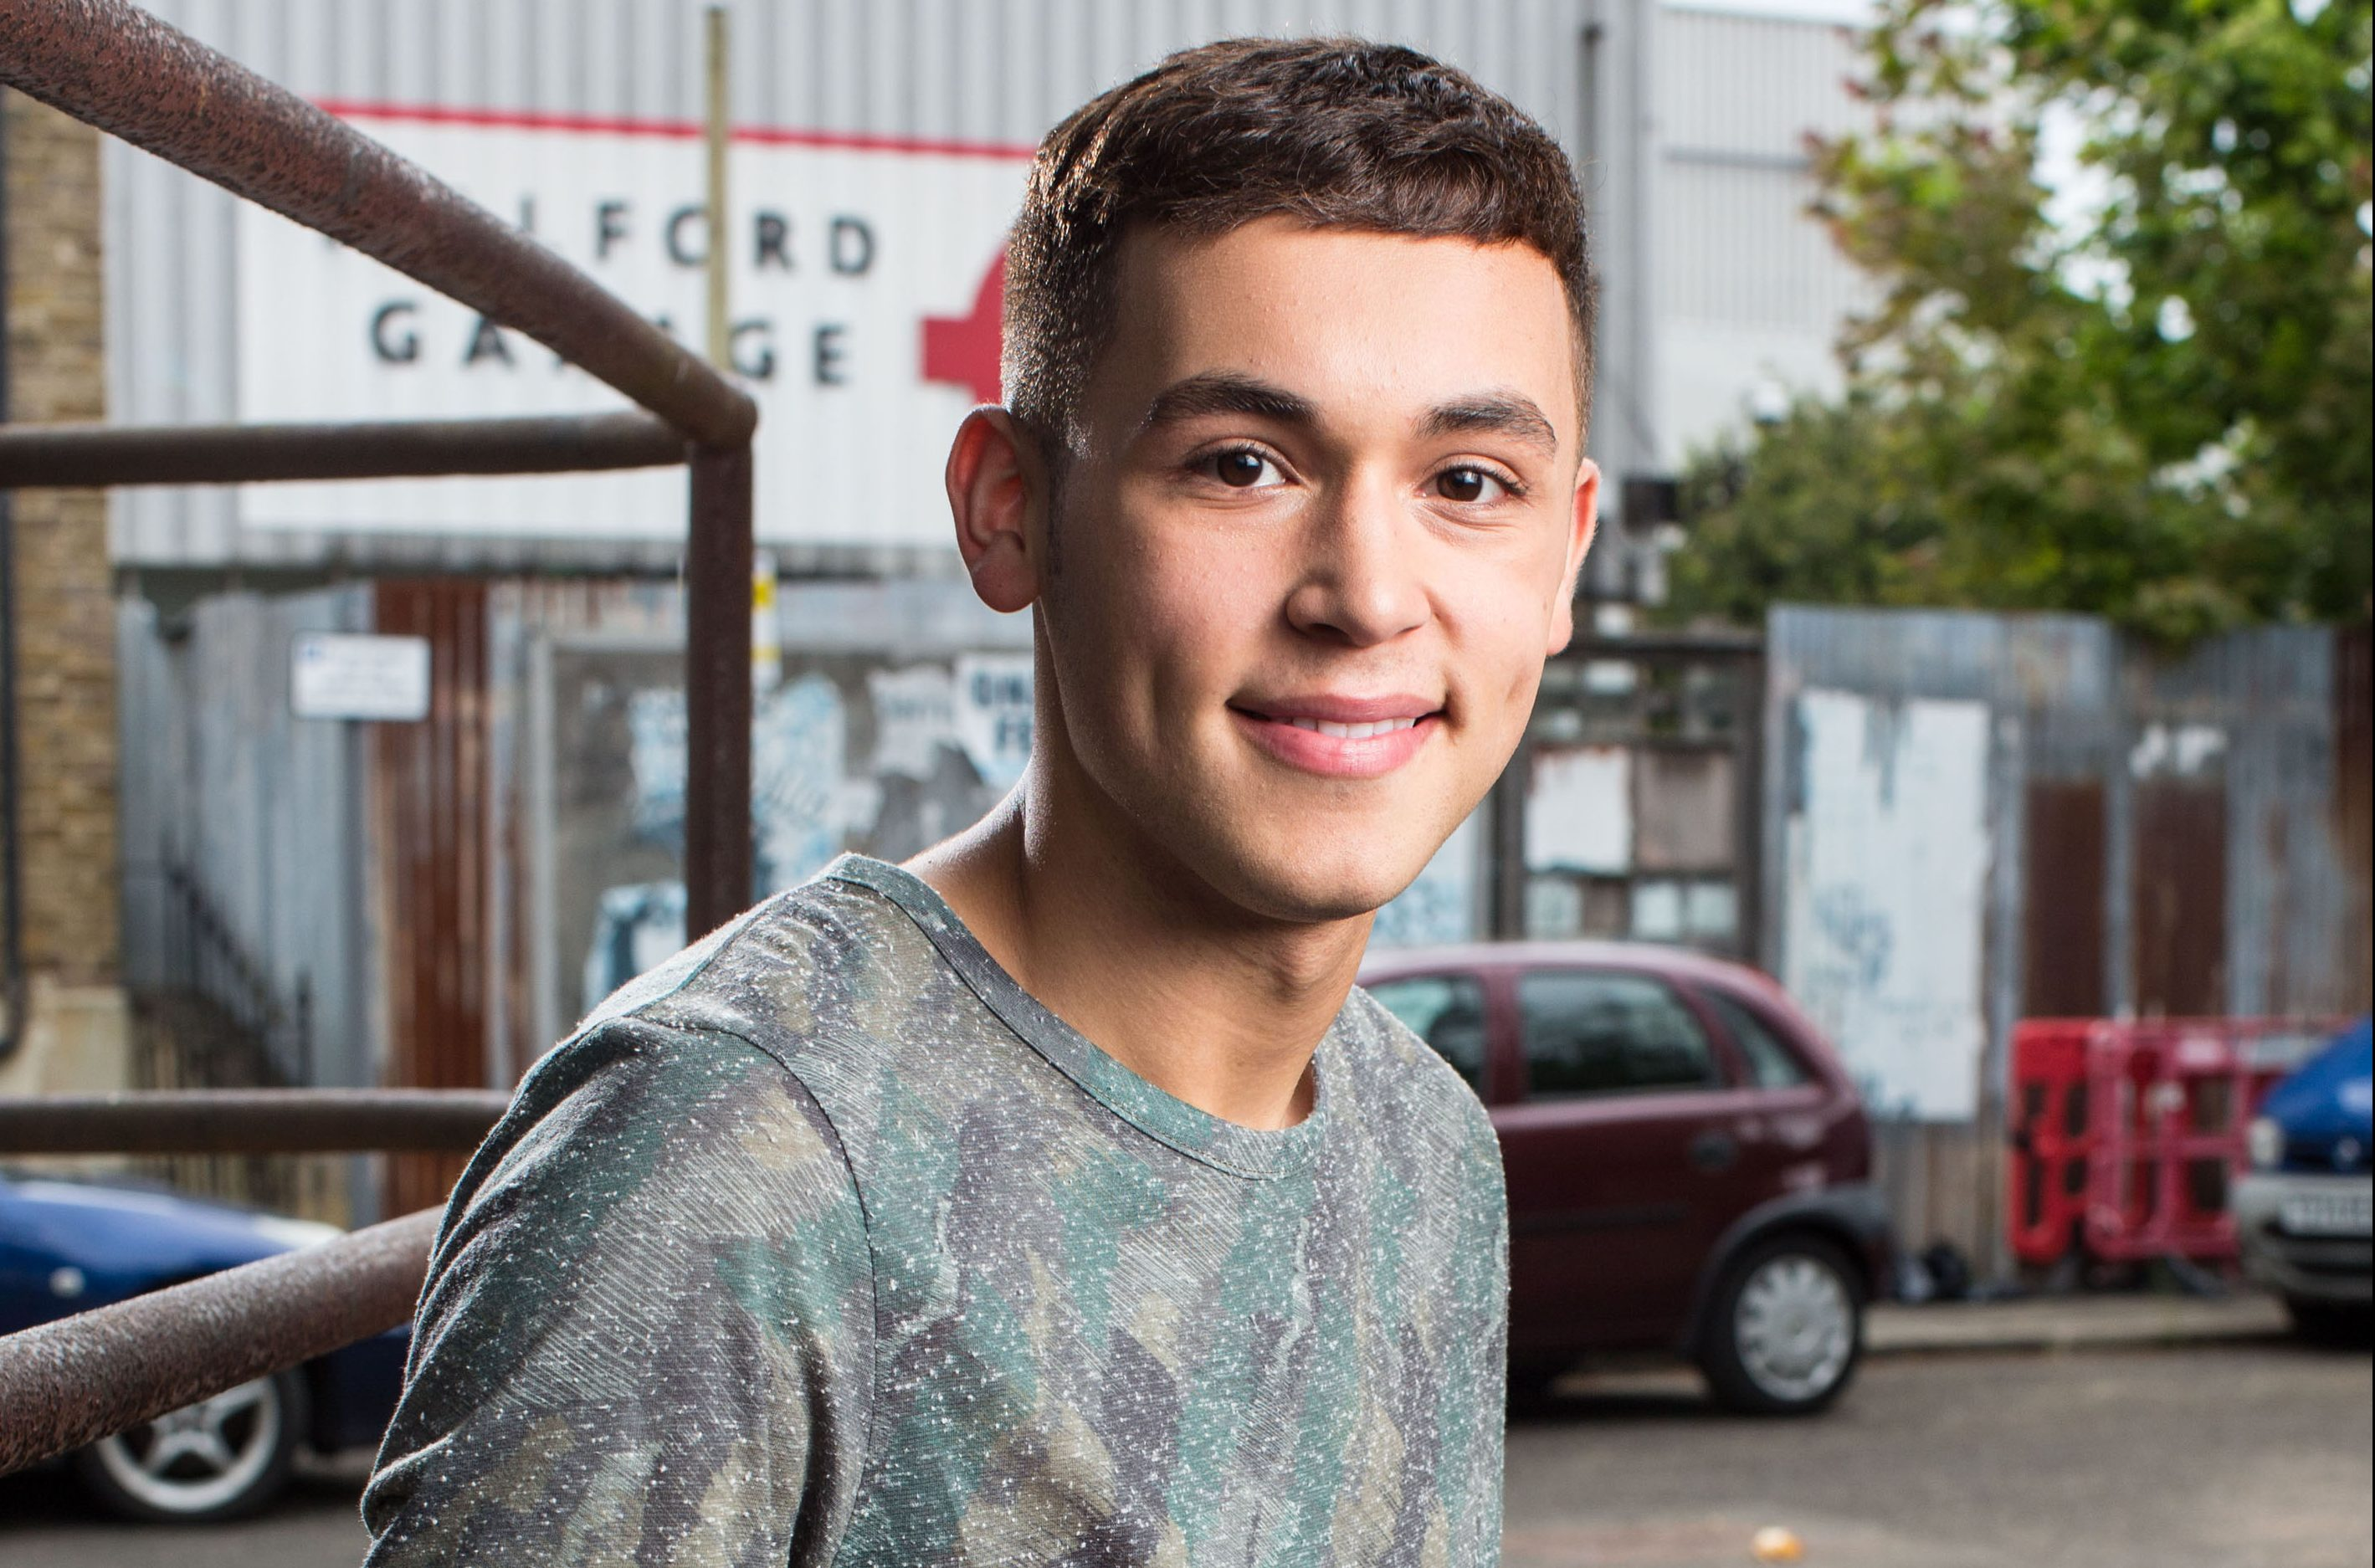 EastEnders star Shaheen Jafargholi on his Casualty role, his closeness to Walford friends and Bonnie Langford's exit